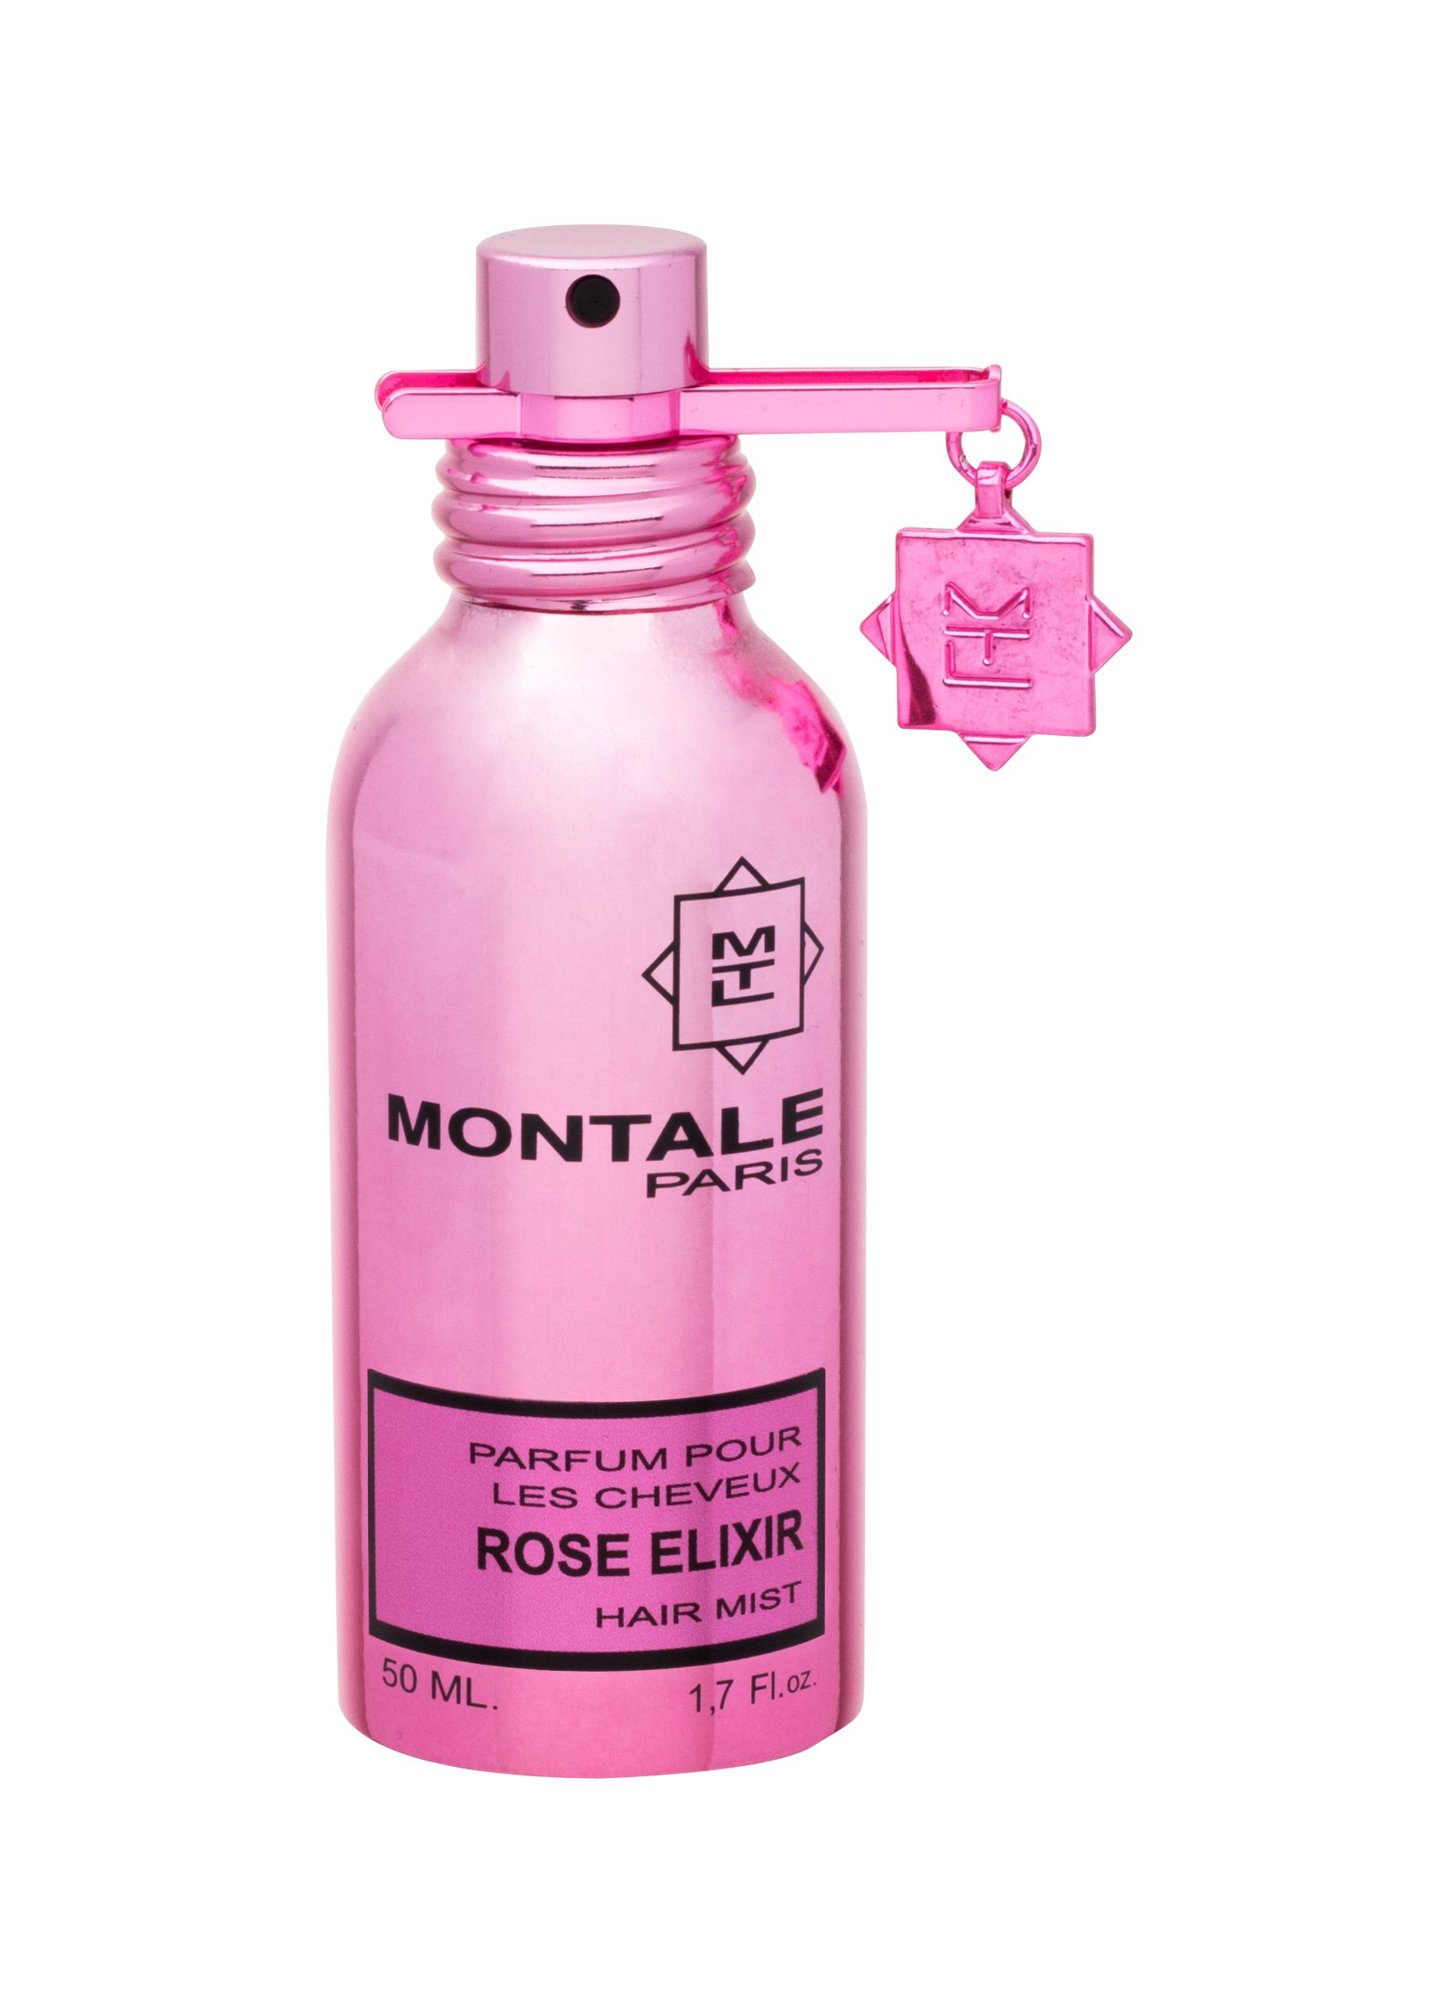 Montale Paris Roses Elixir Hair mist 50ml